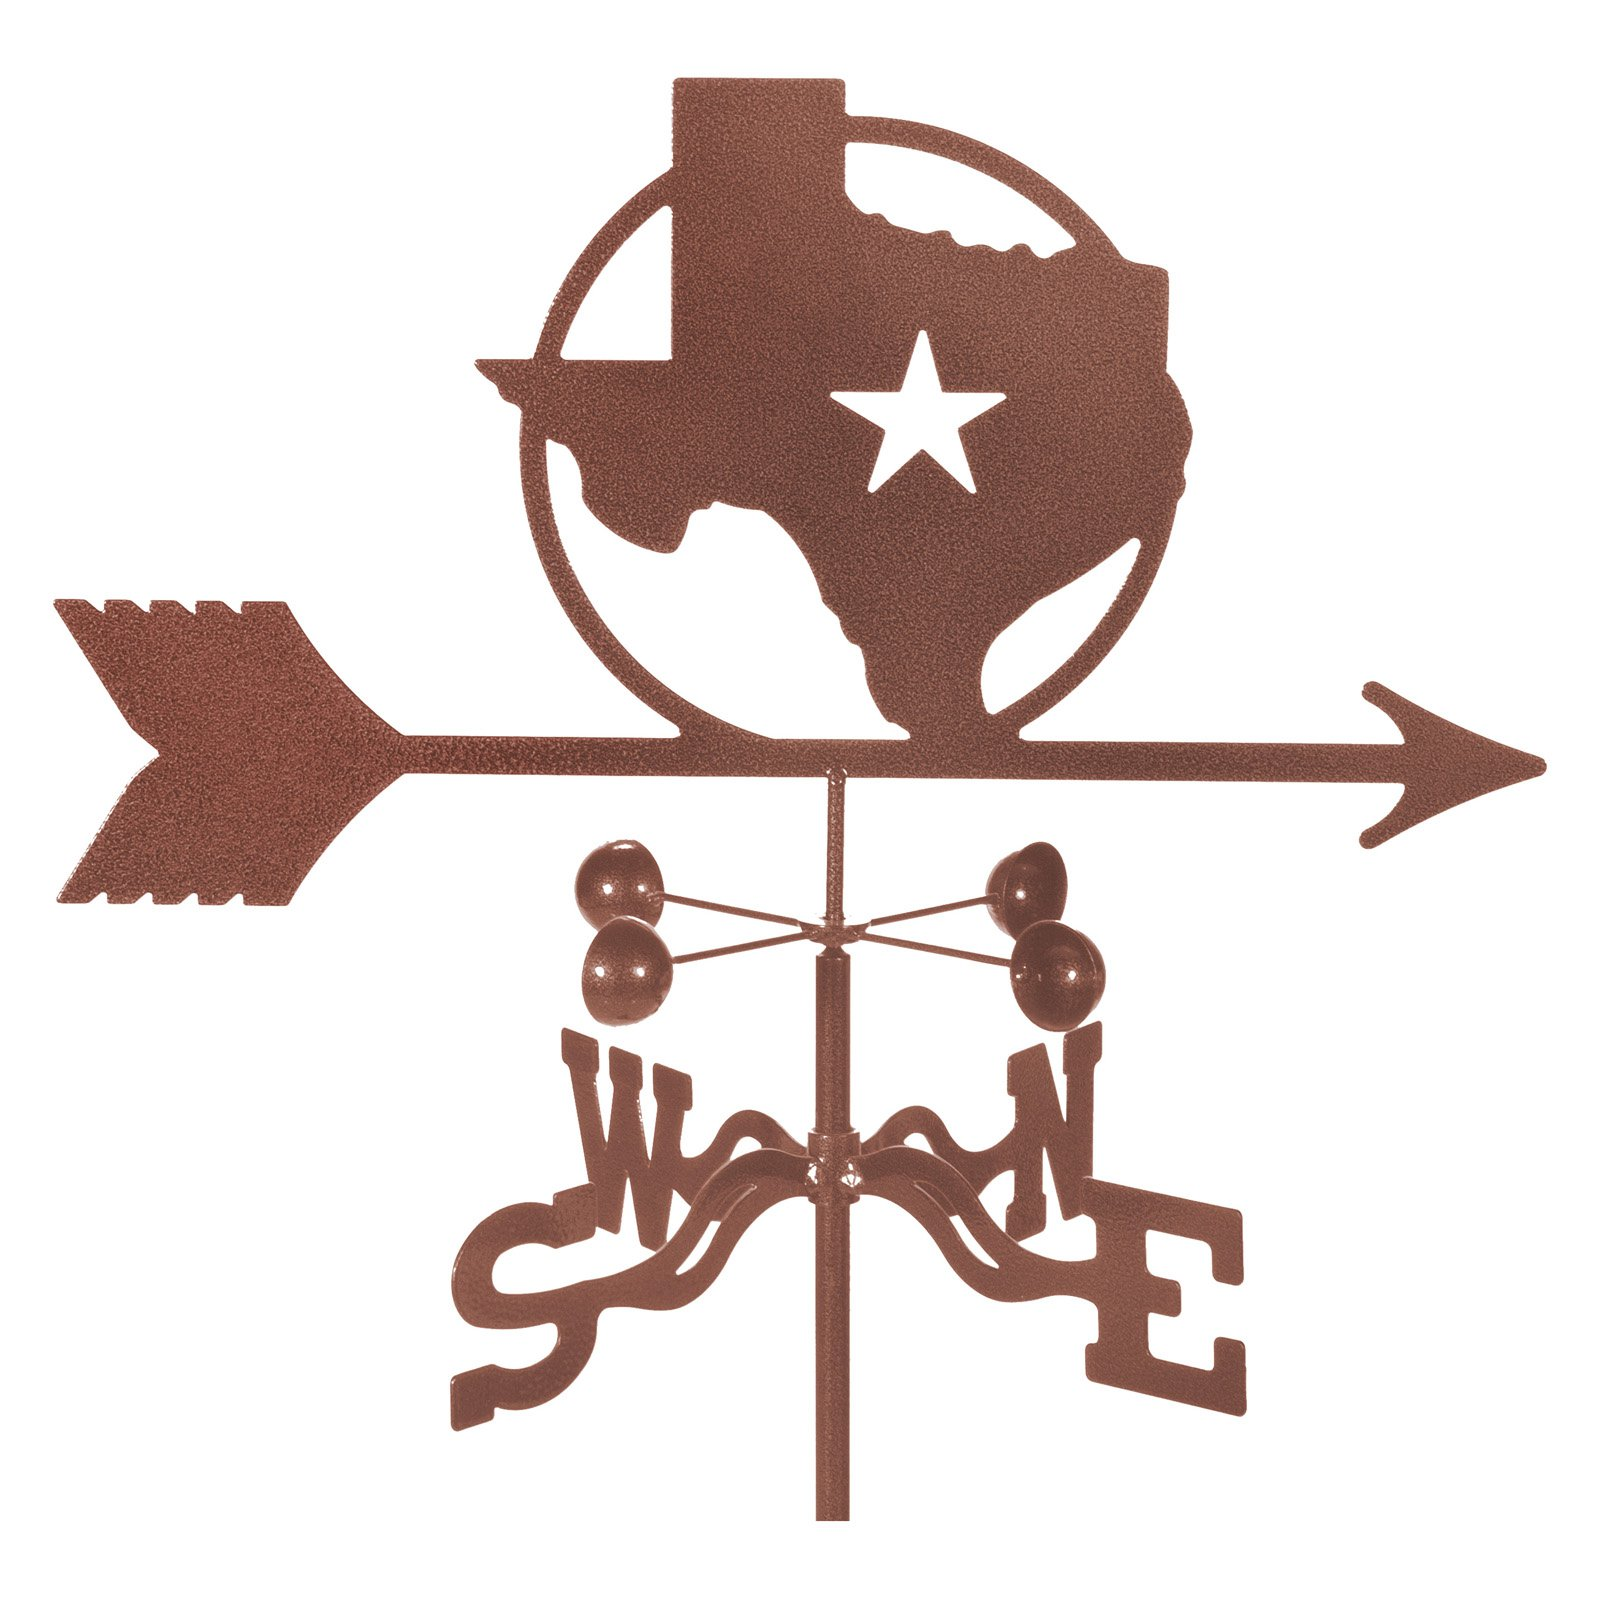 EZ Vane Texas Star Weathervane by EZ Vane